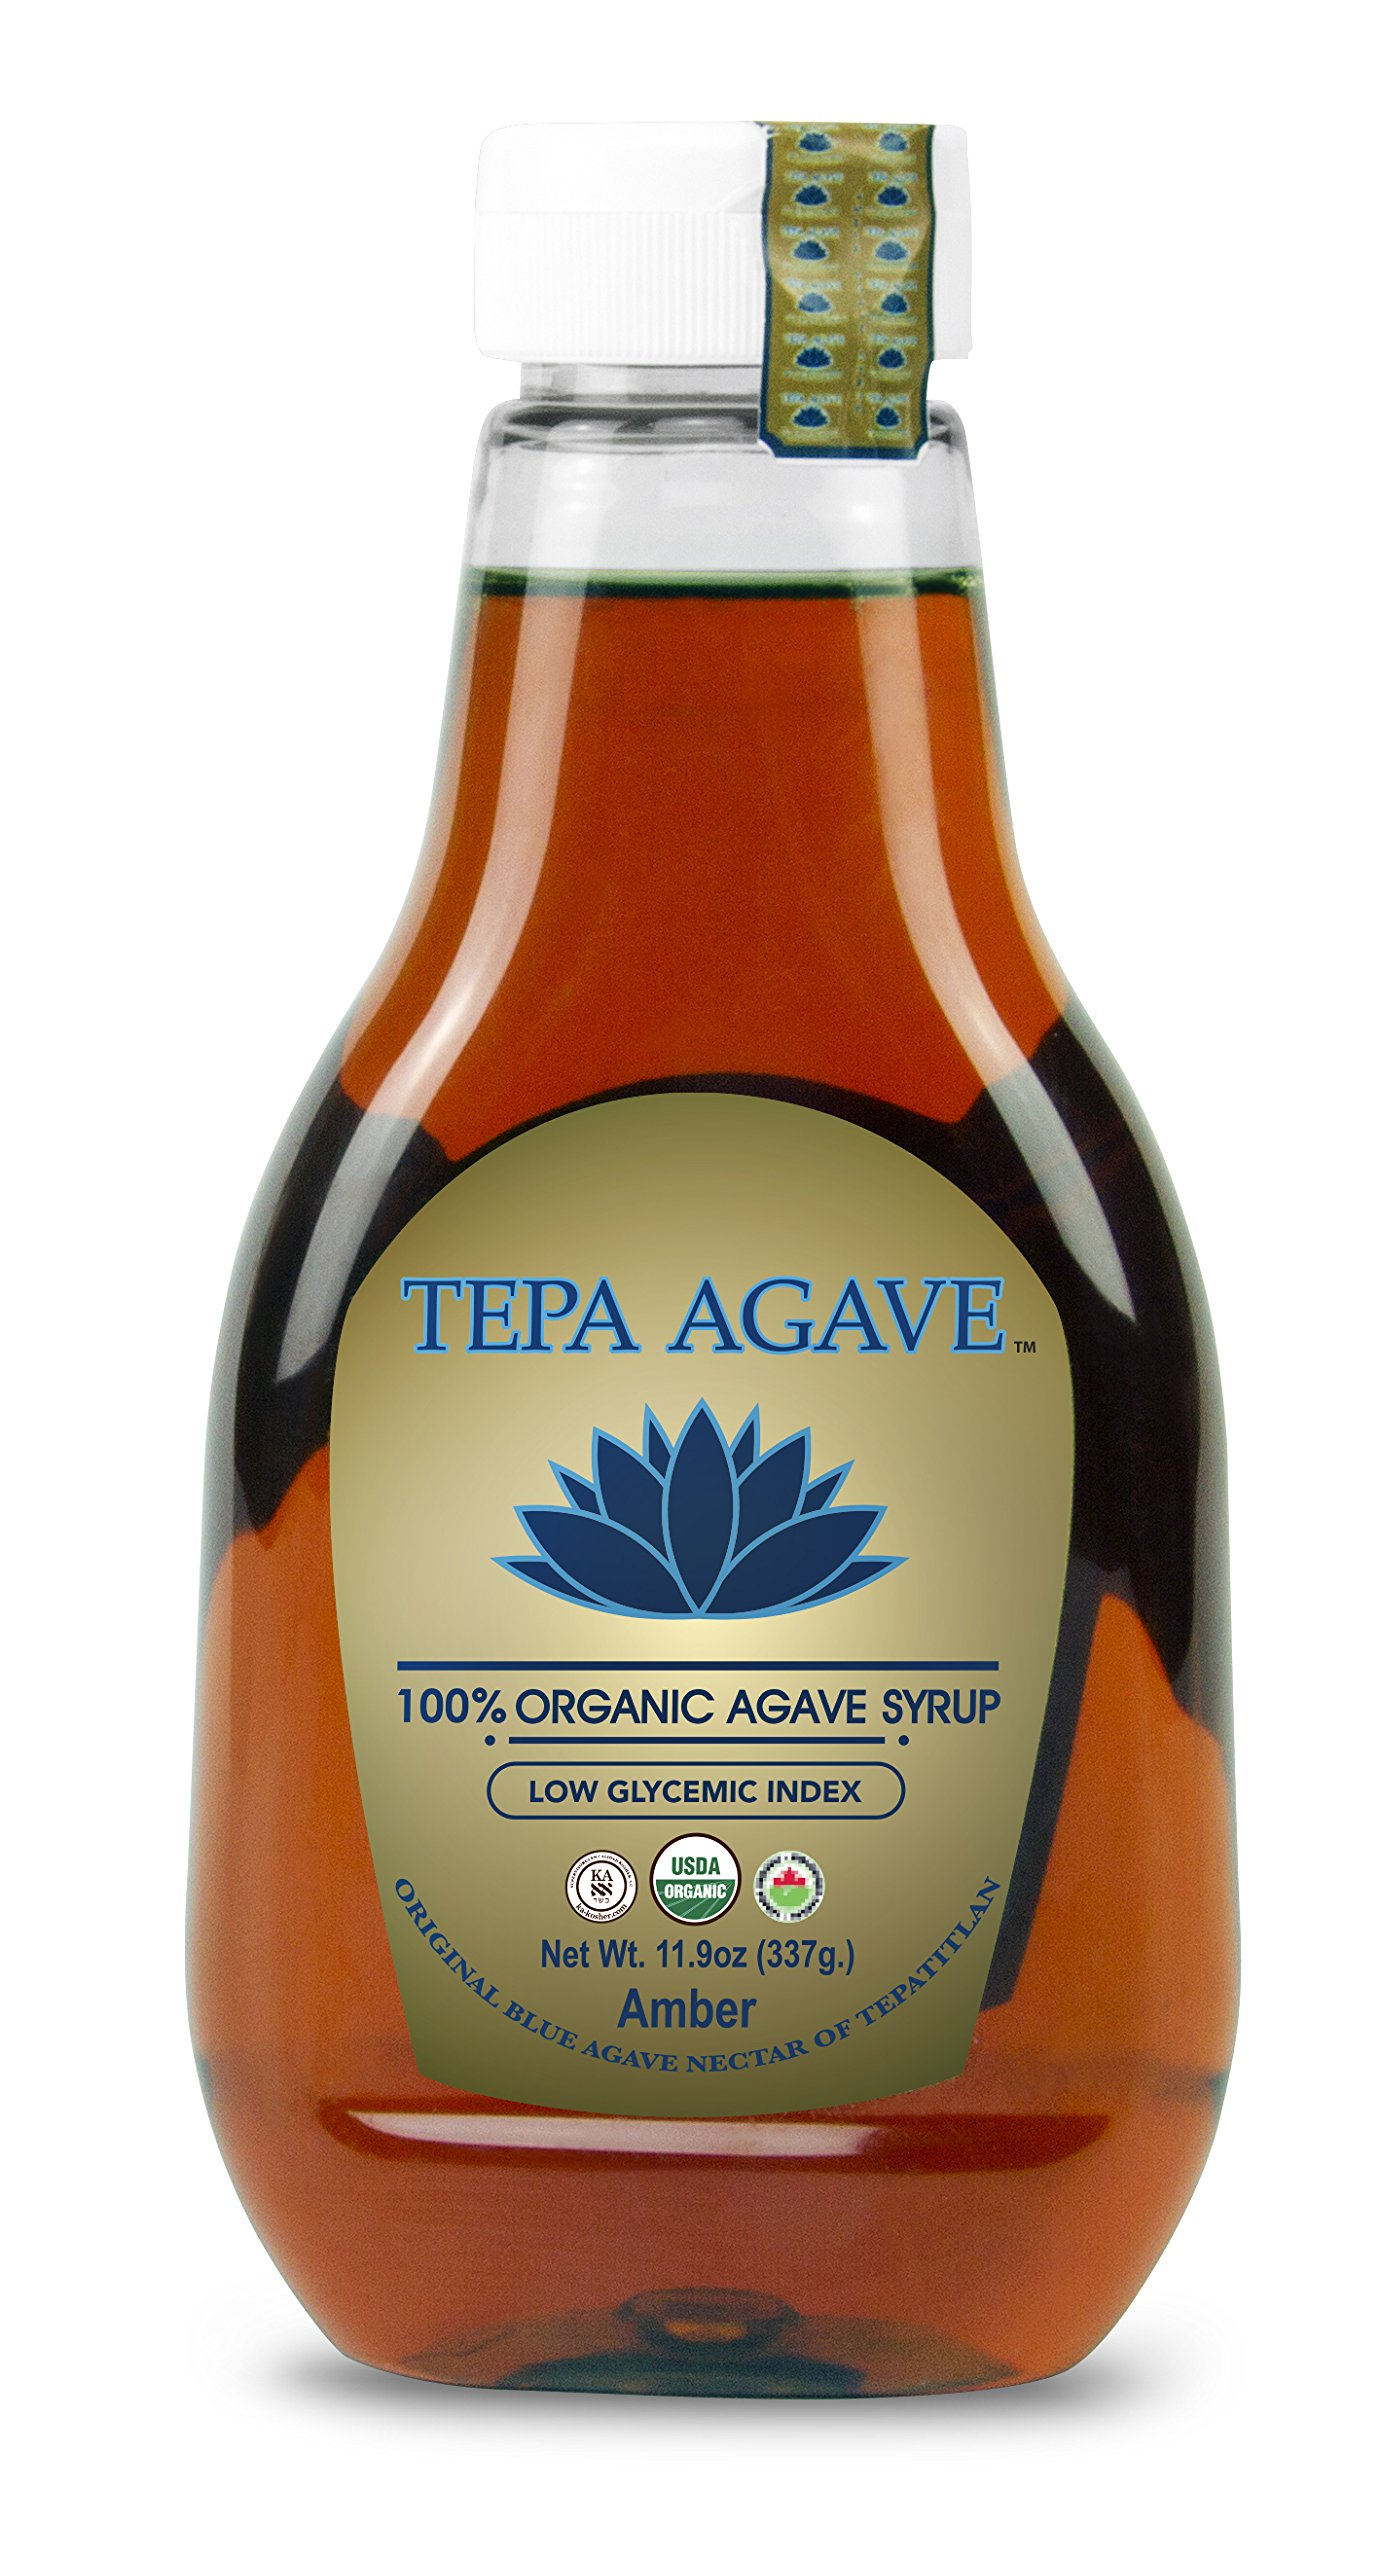 Tepa Agave Amber Sweet Organic Blue Agave syrup Low-Glycemic Sweetener Agave Nectar 23.8 0z